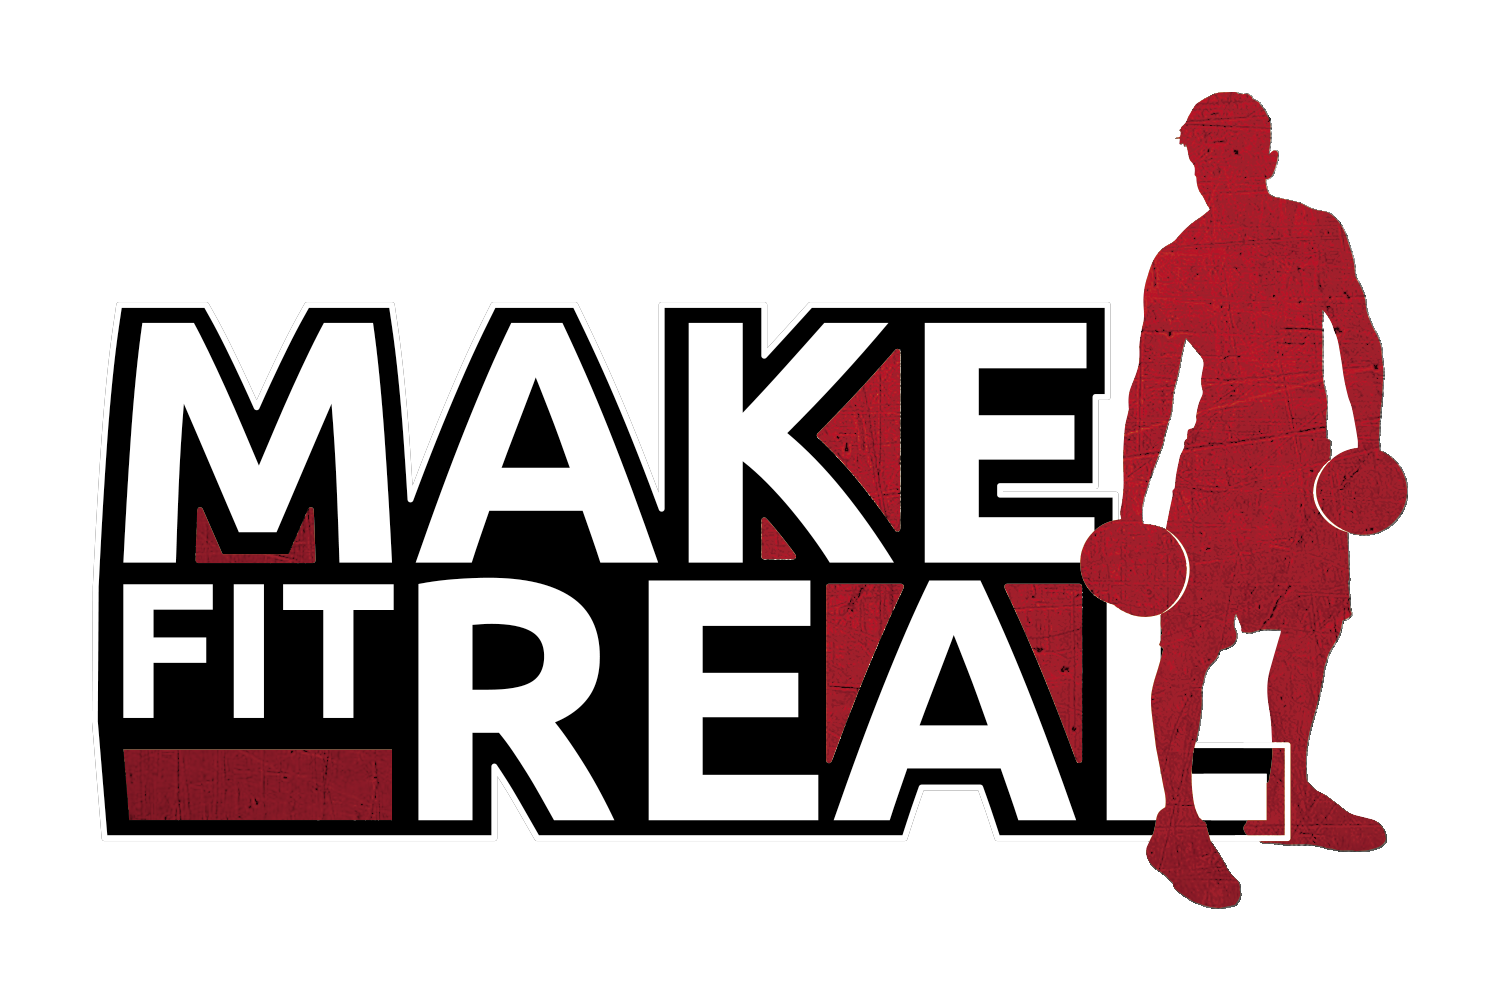 Make Fit Real